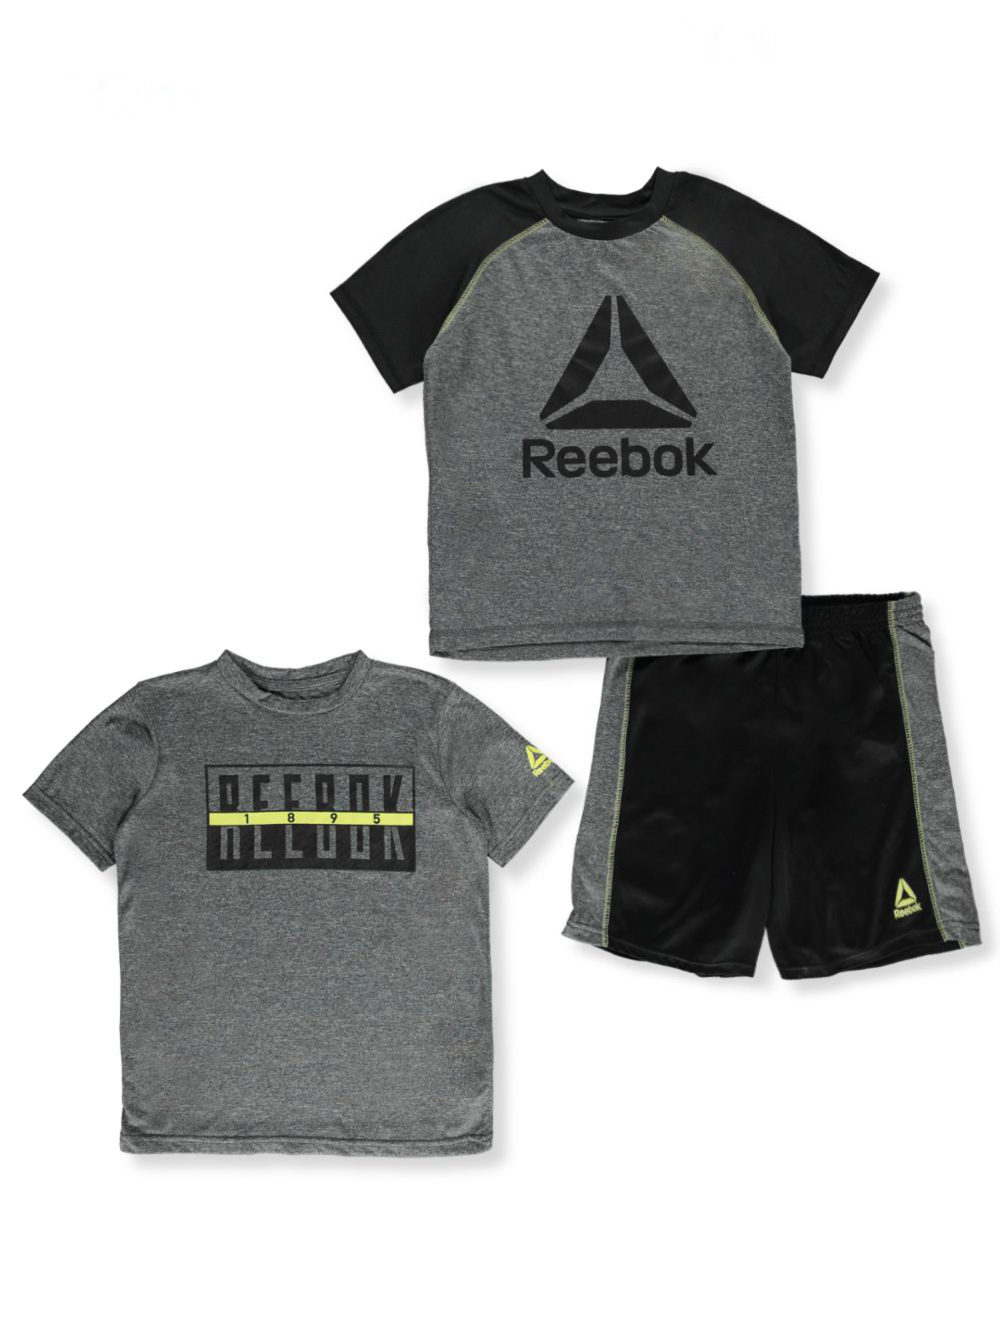 Boys' 3-Piece Mix-and-Match Set Outfit